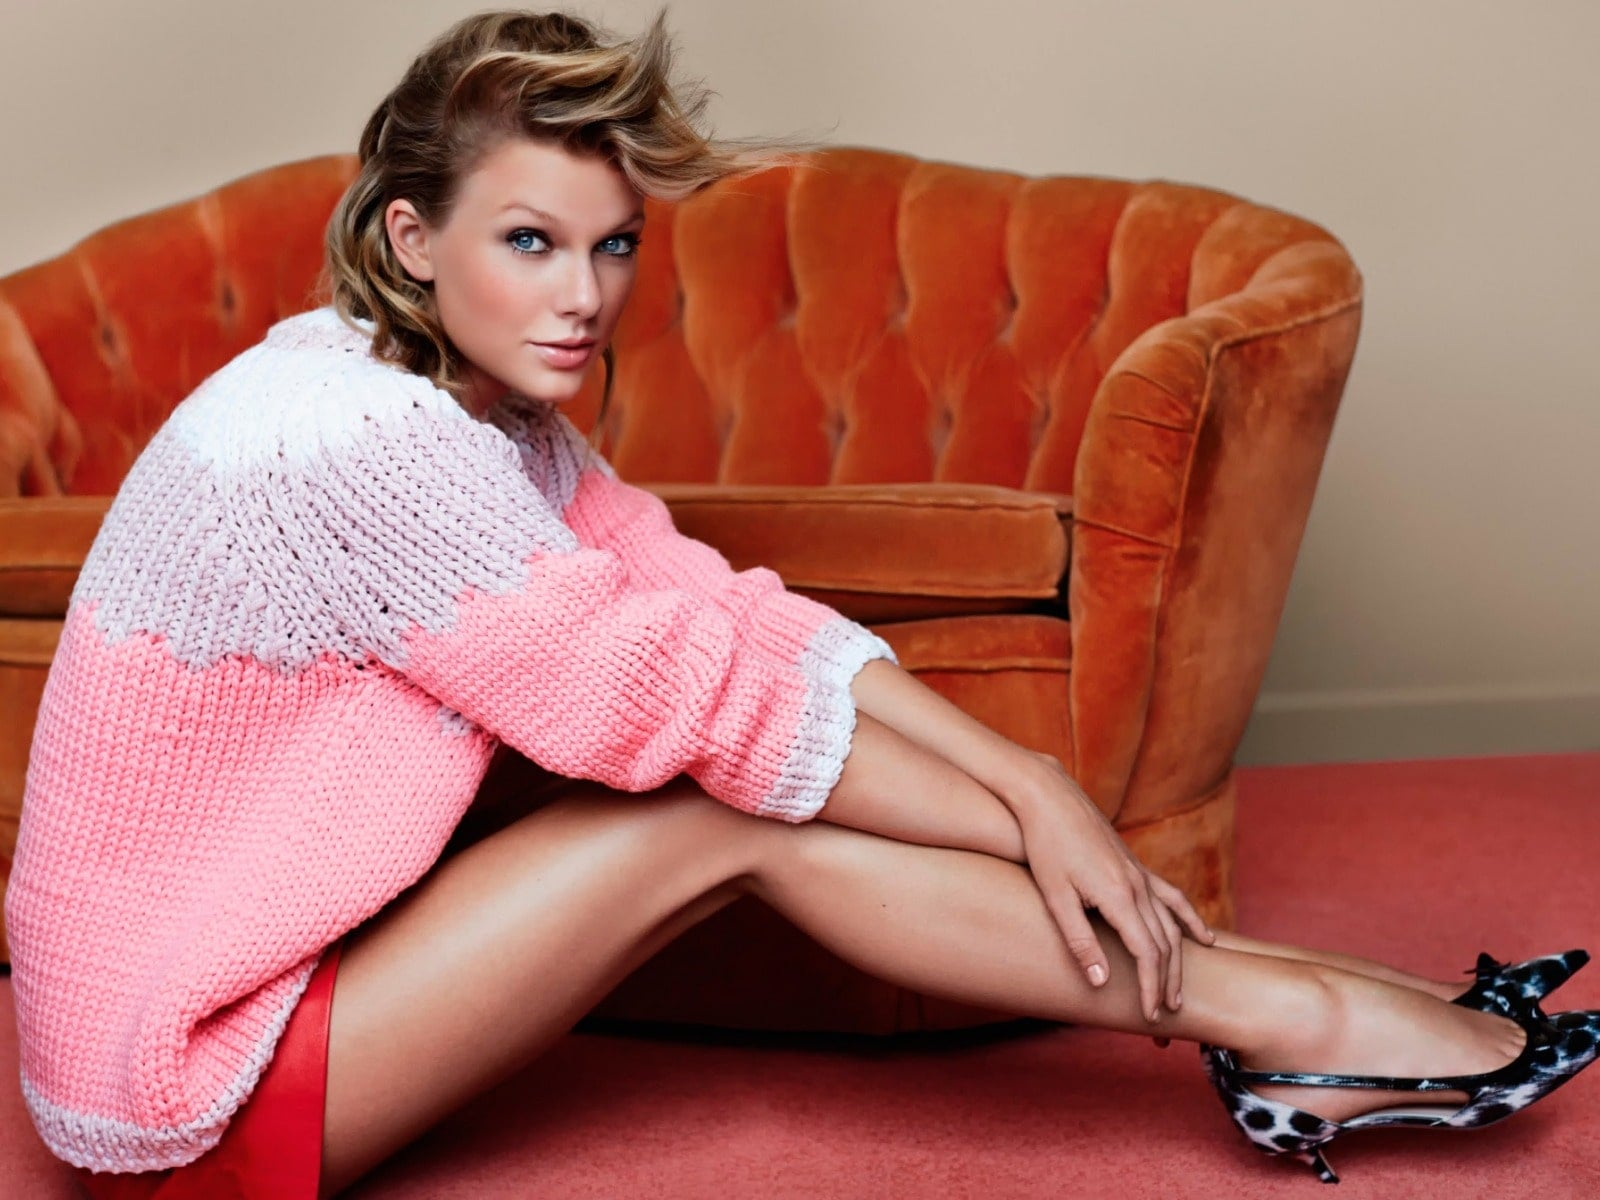 Taylor Swift Sexy Feet